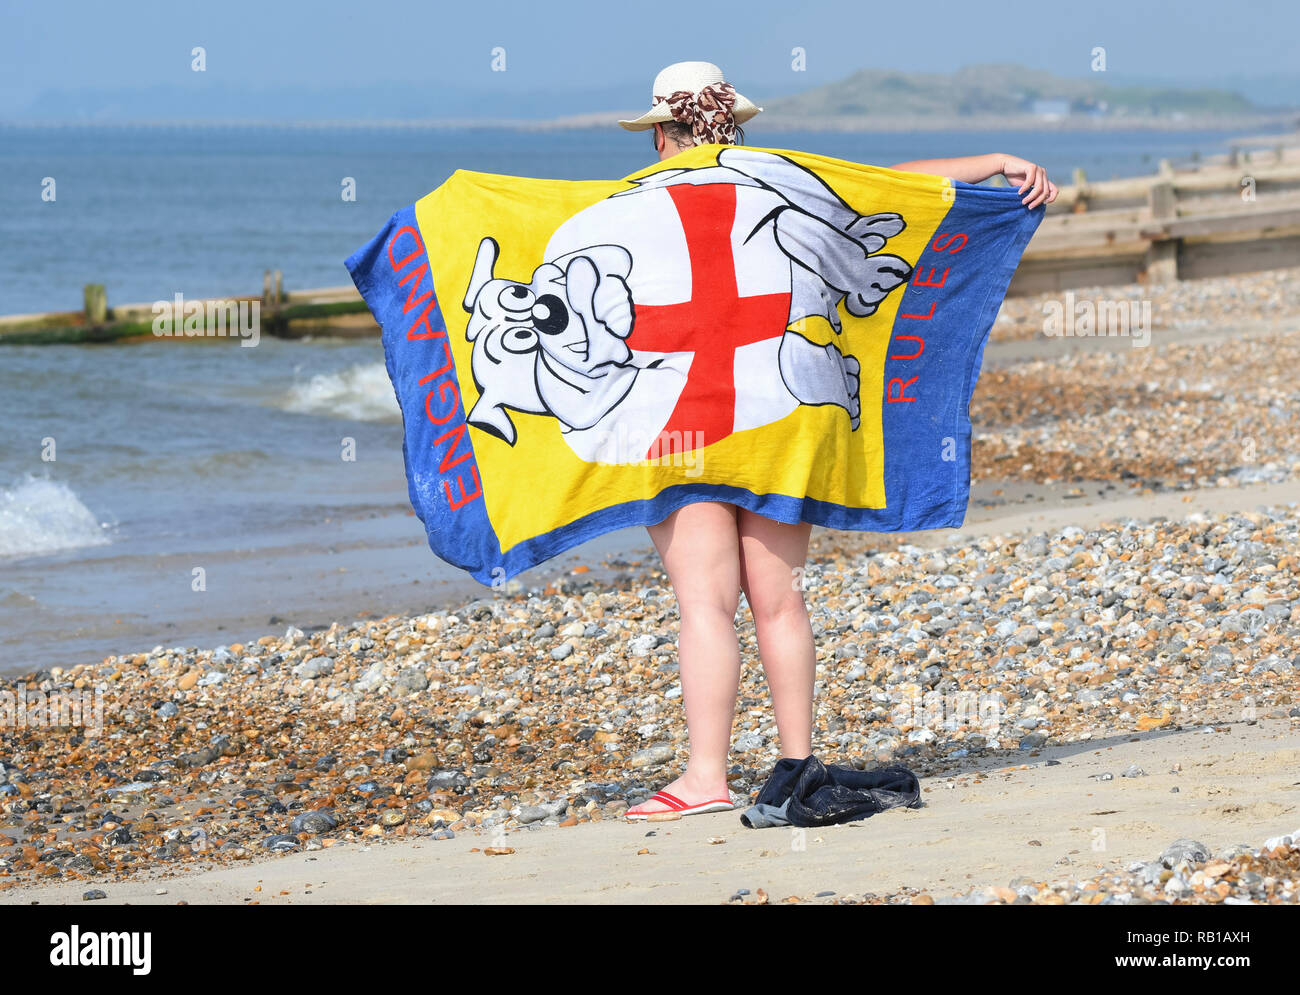 A woman dries off on a beach by the sea with a beach towel, on a hot day in Spring at a seaside resort in the UK. Stock Photo